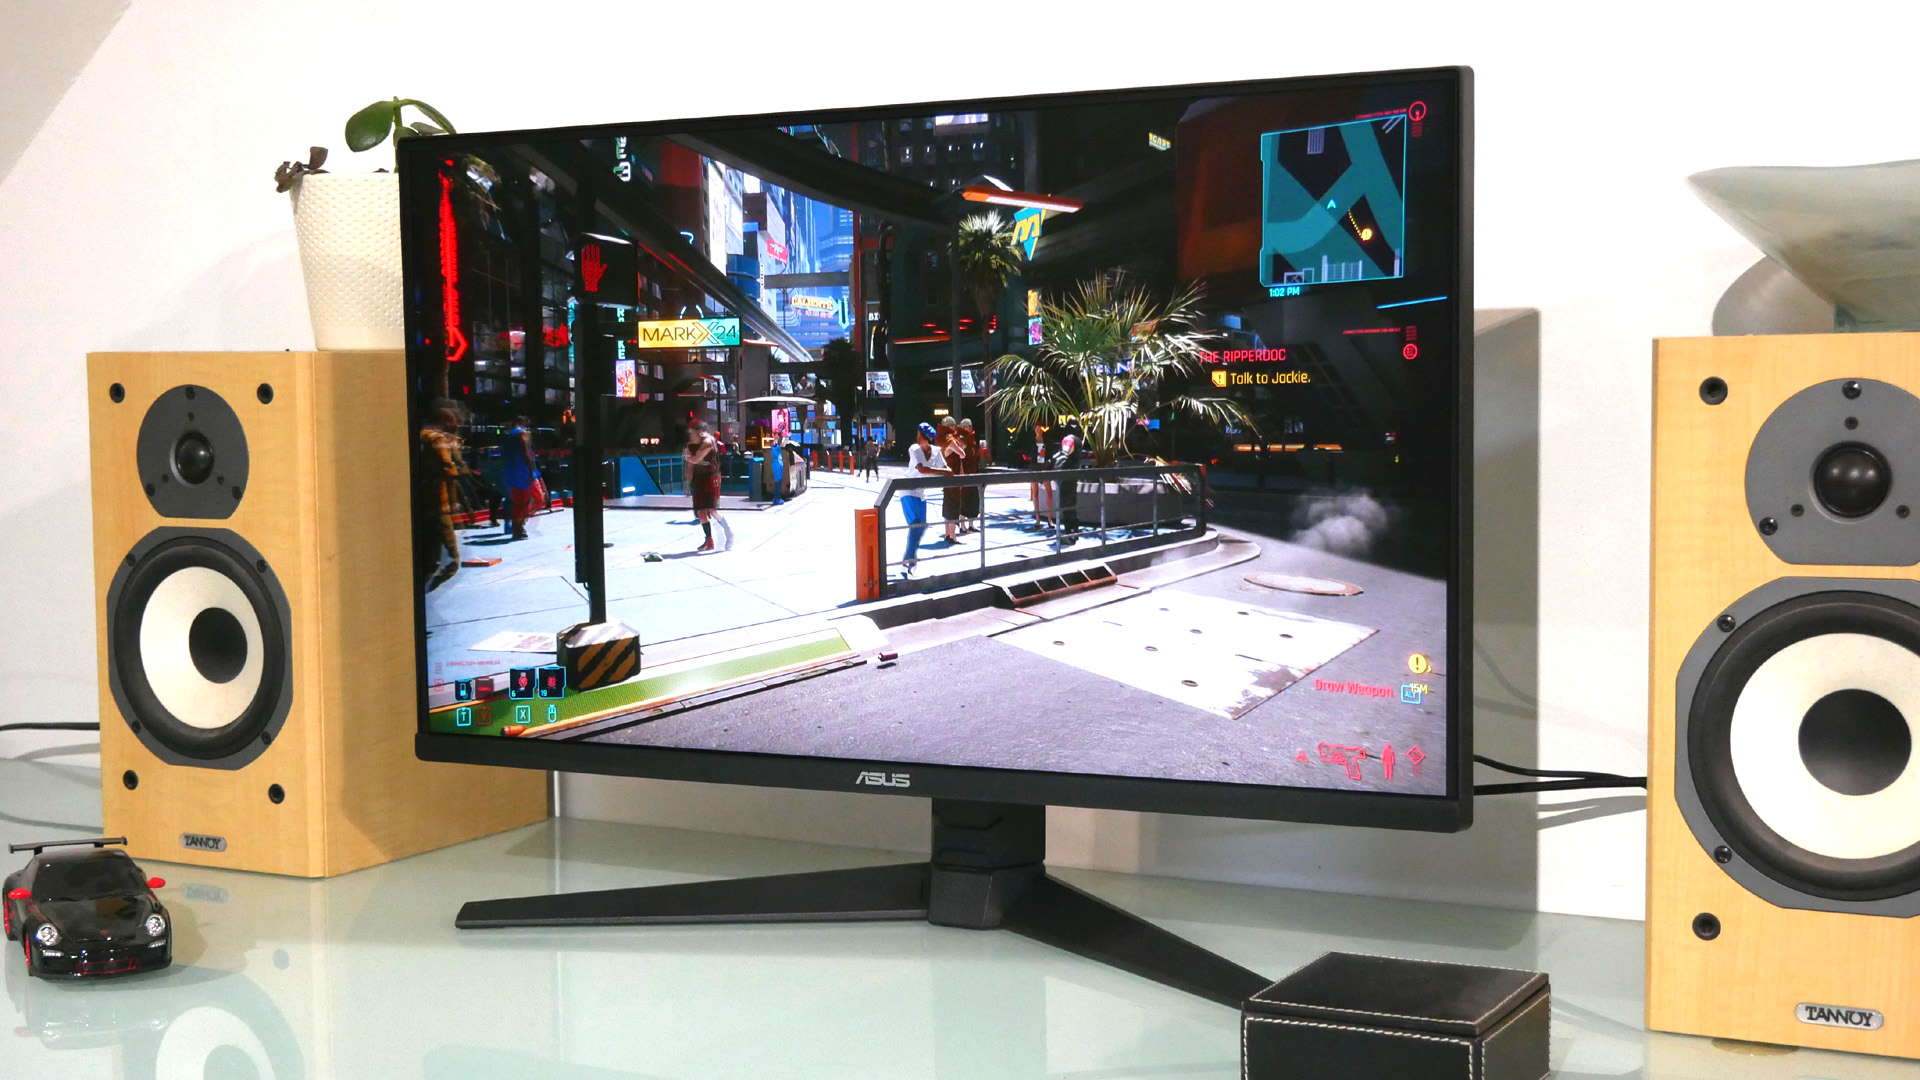 Asus TUF VG28UQL1A gaming monitor with Cyberpunk 2077 on the screen